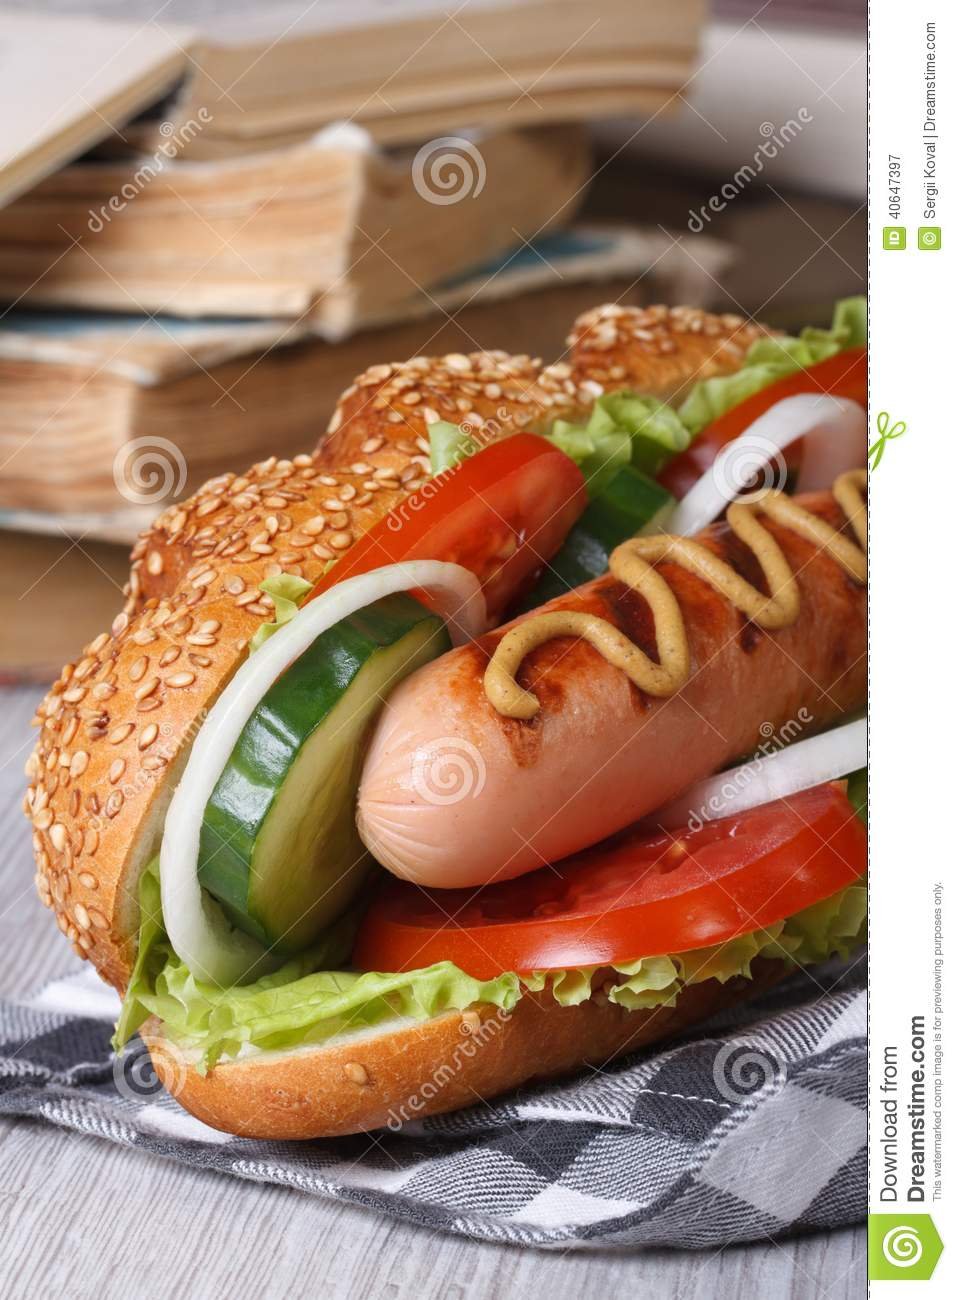 school lunch hot dog with sausage stock image image of meat mustard 40647397. Black Bedroom Furniture Sets. Home Design Ideas